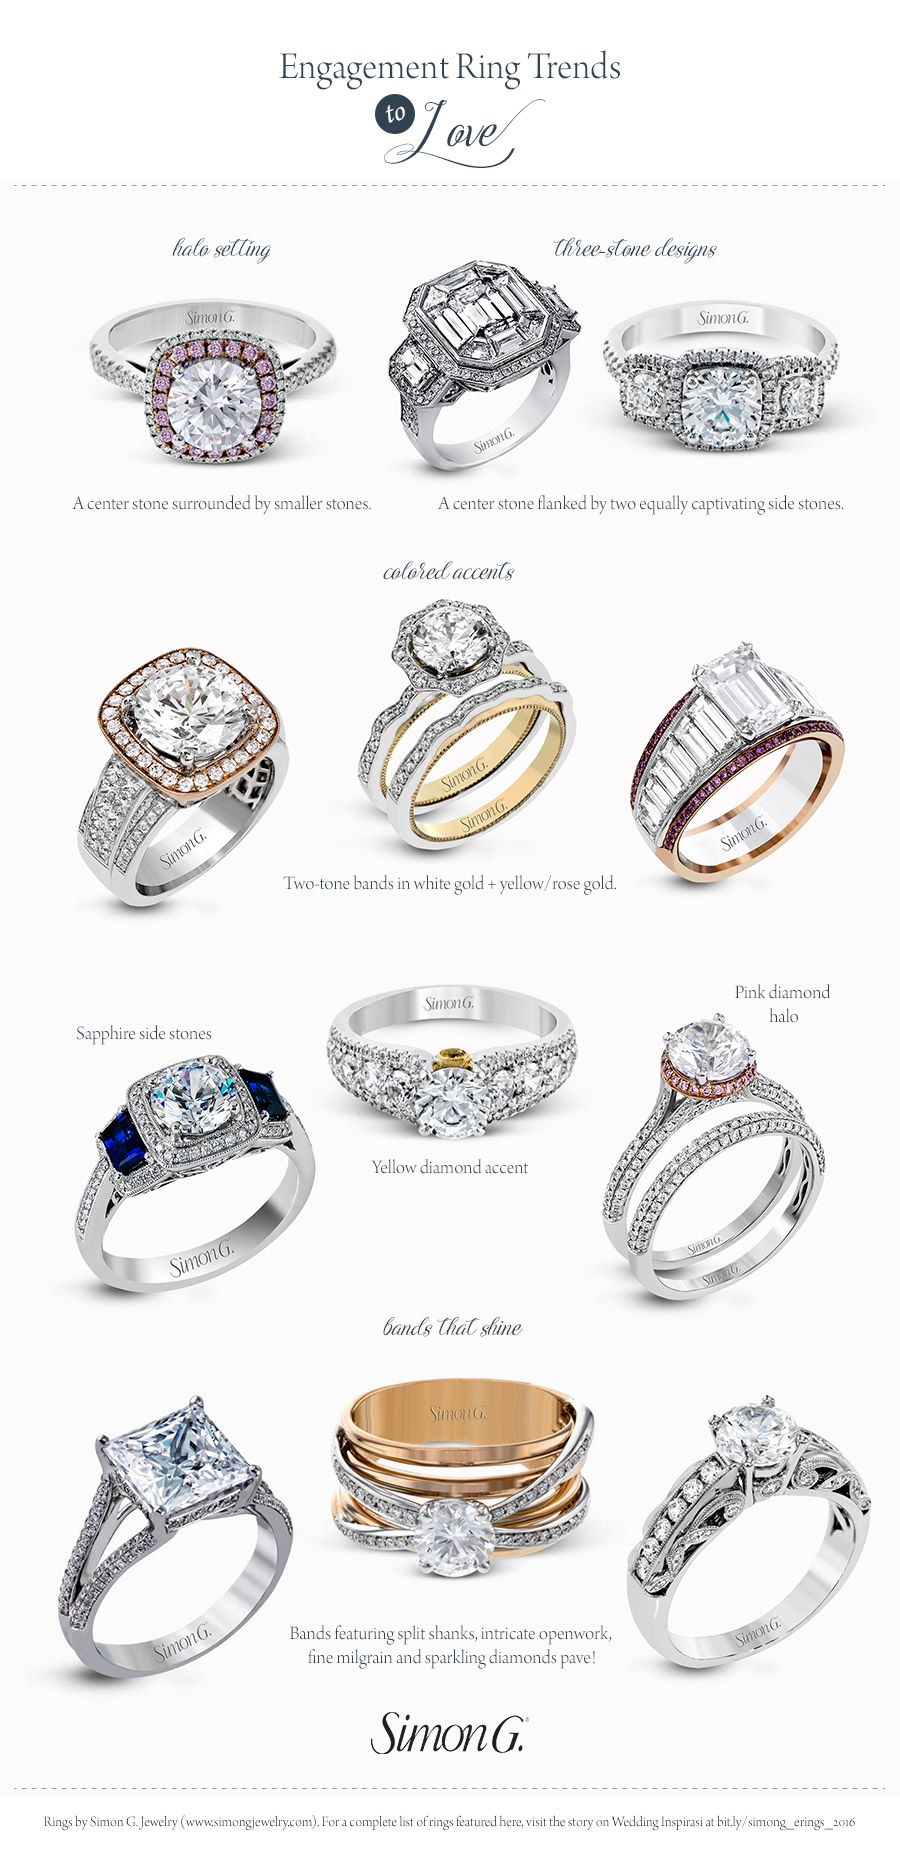 Simon G Gorgeous Engagement Rings Wedding Ring Styles And Trends 2017 Colored Diamond Rose Gold Three Stone Halo Ering